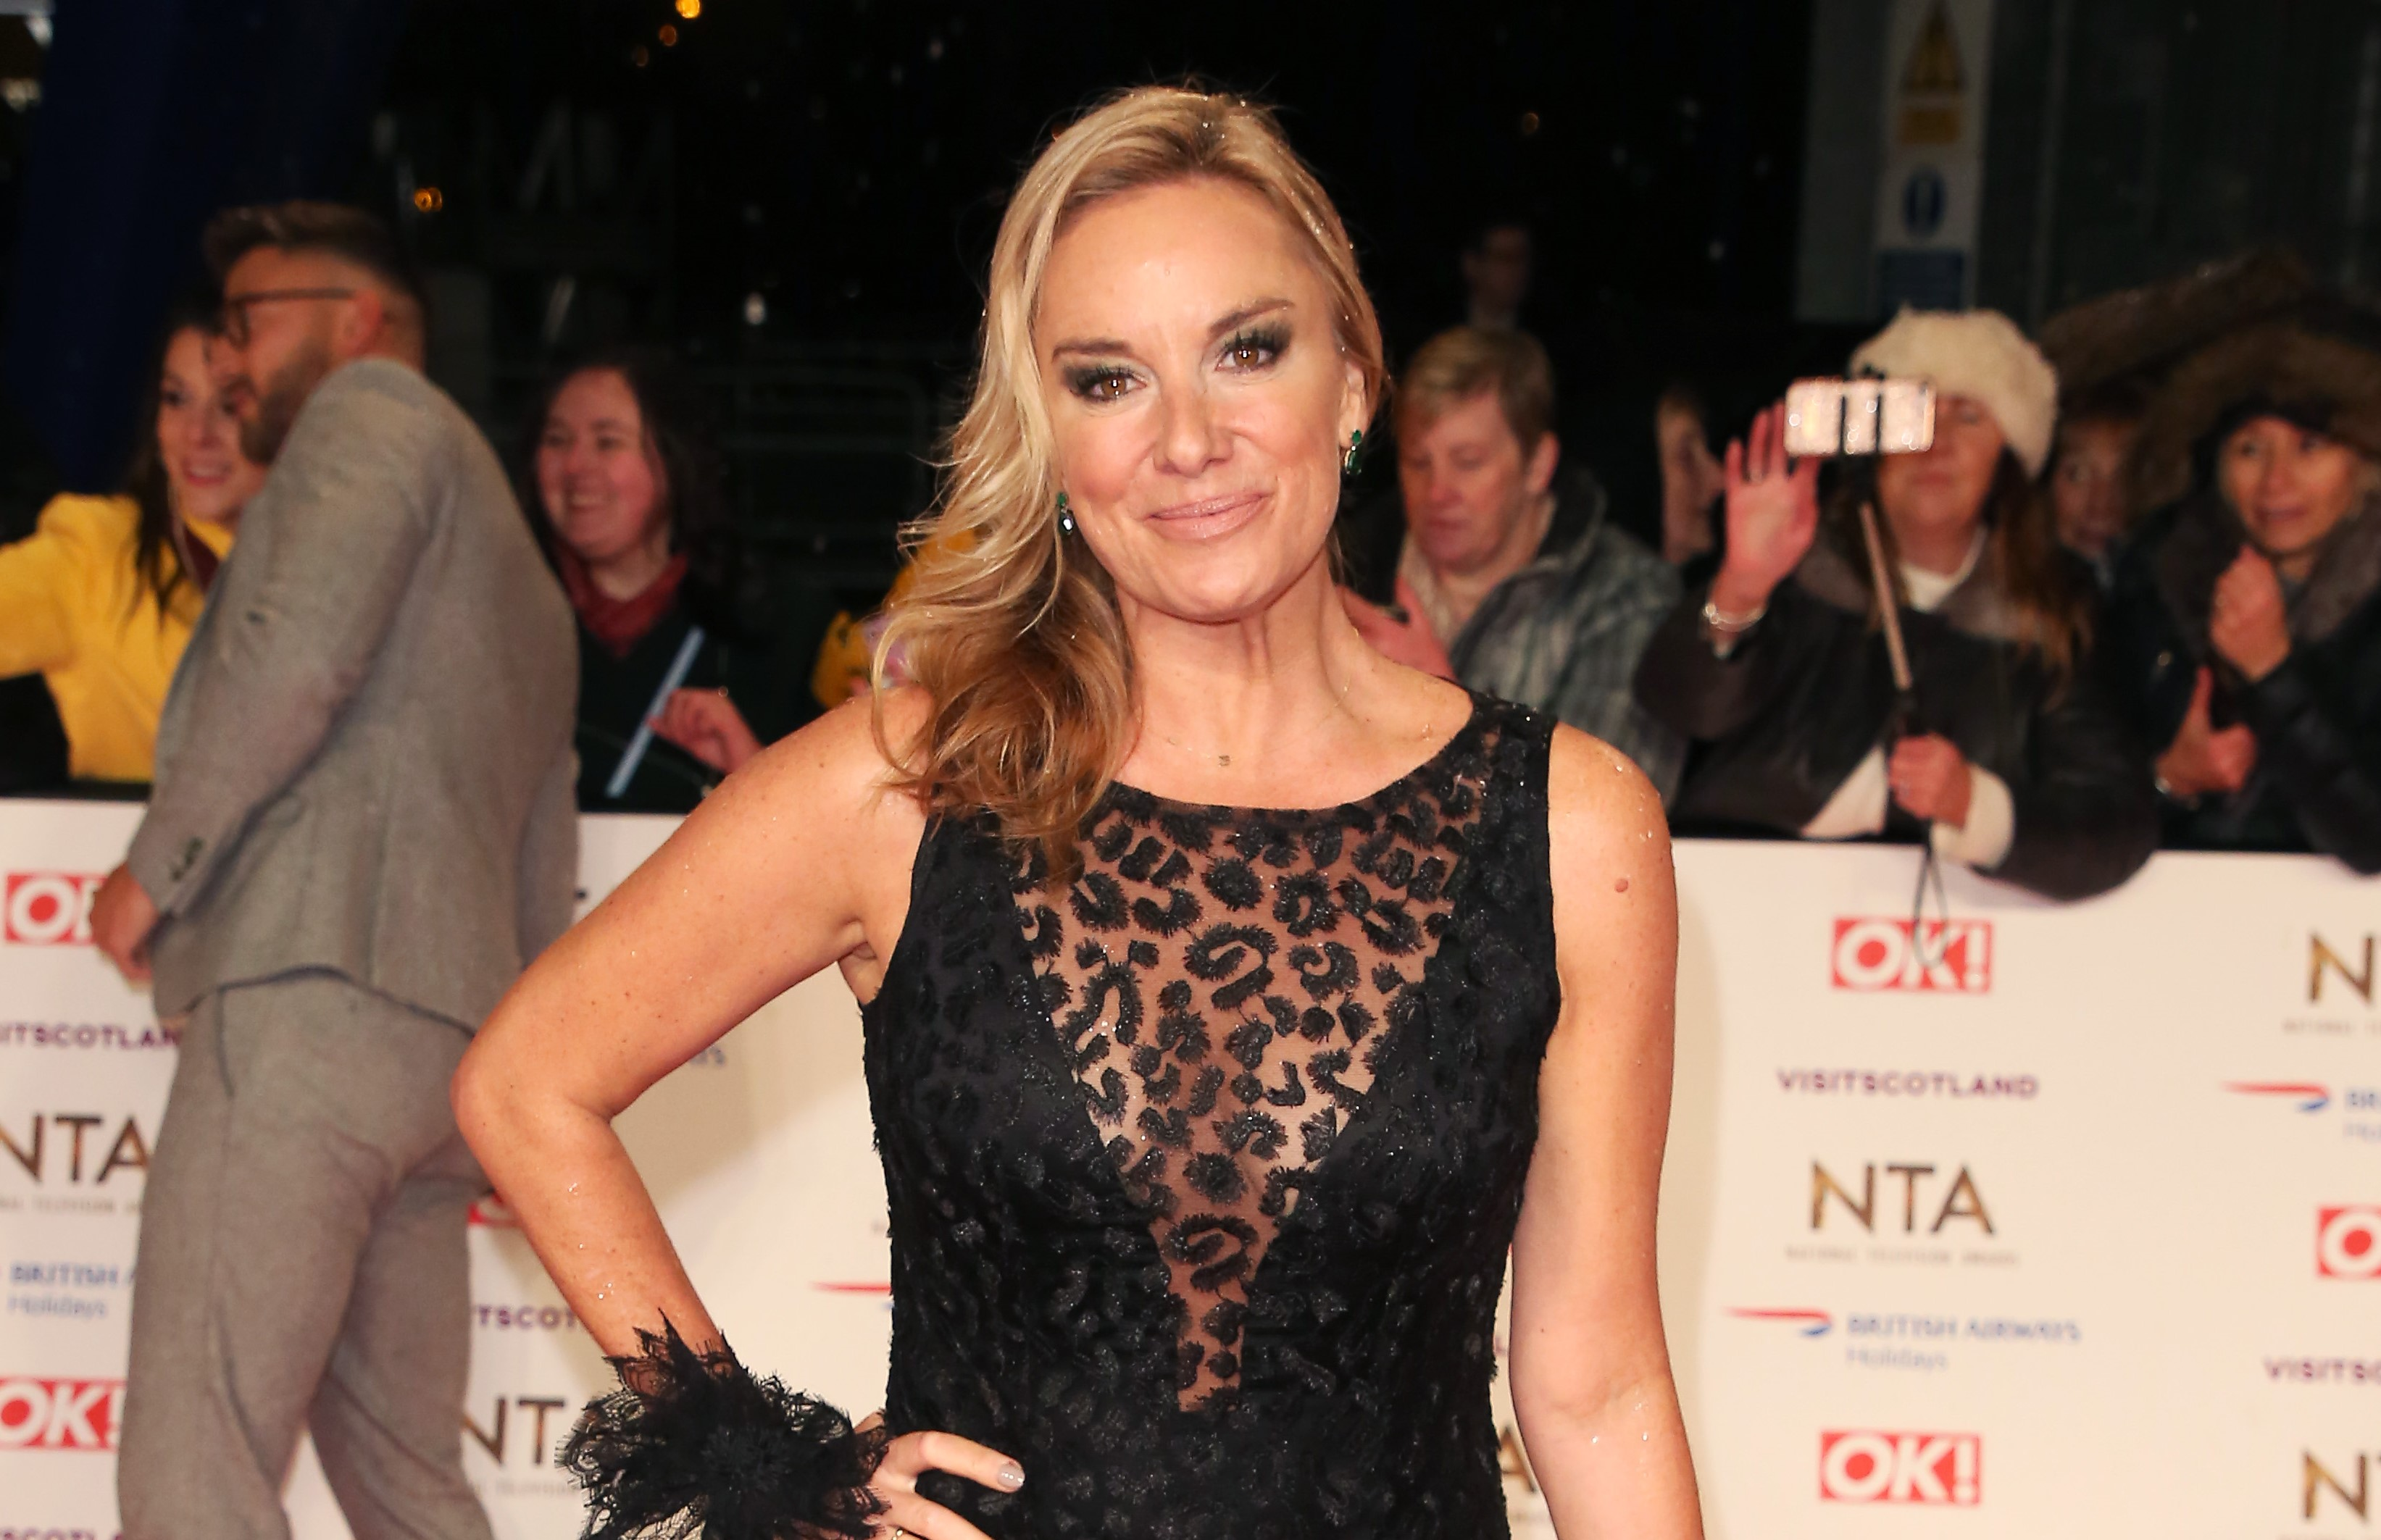 Instagram Tamzin Outhwaite naked (83 foto and video), Tits, Hot, Feet, cleavage 2006